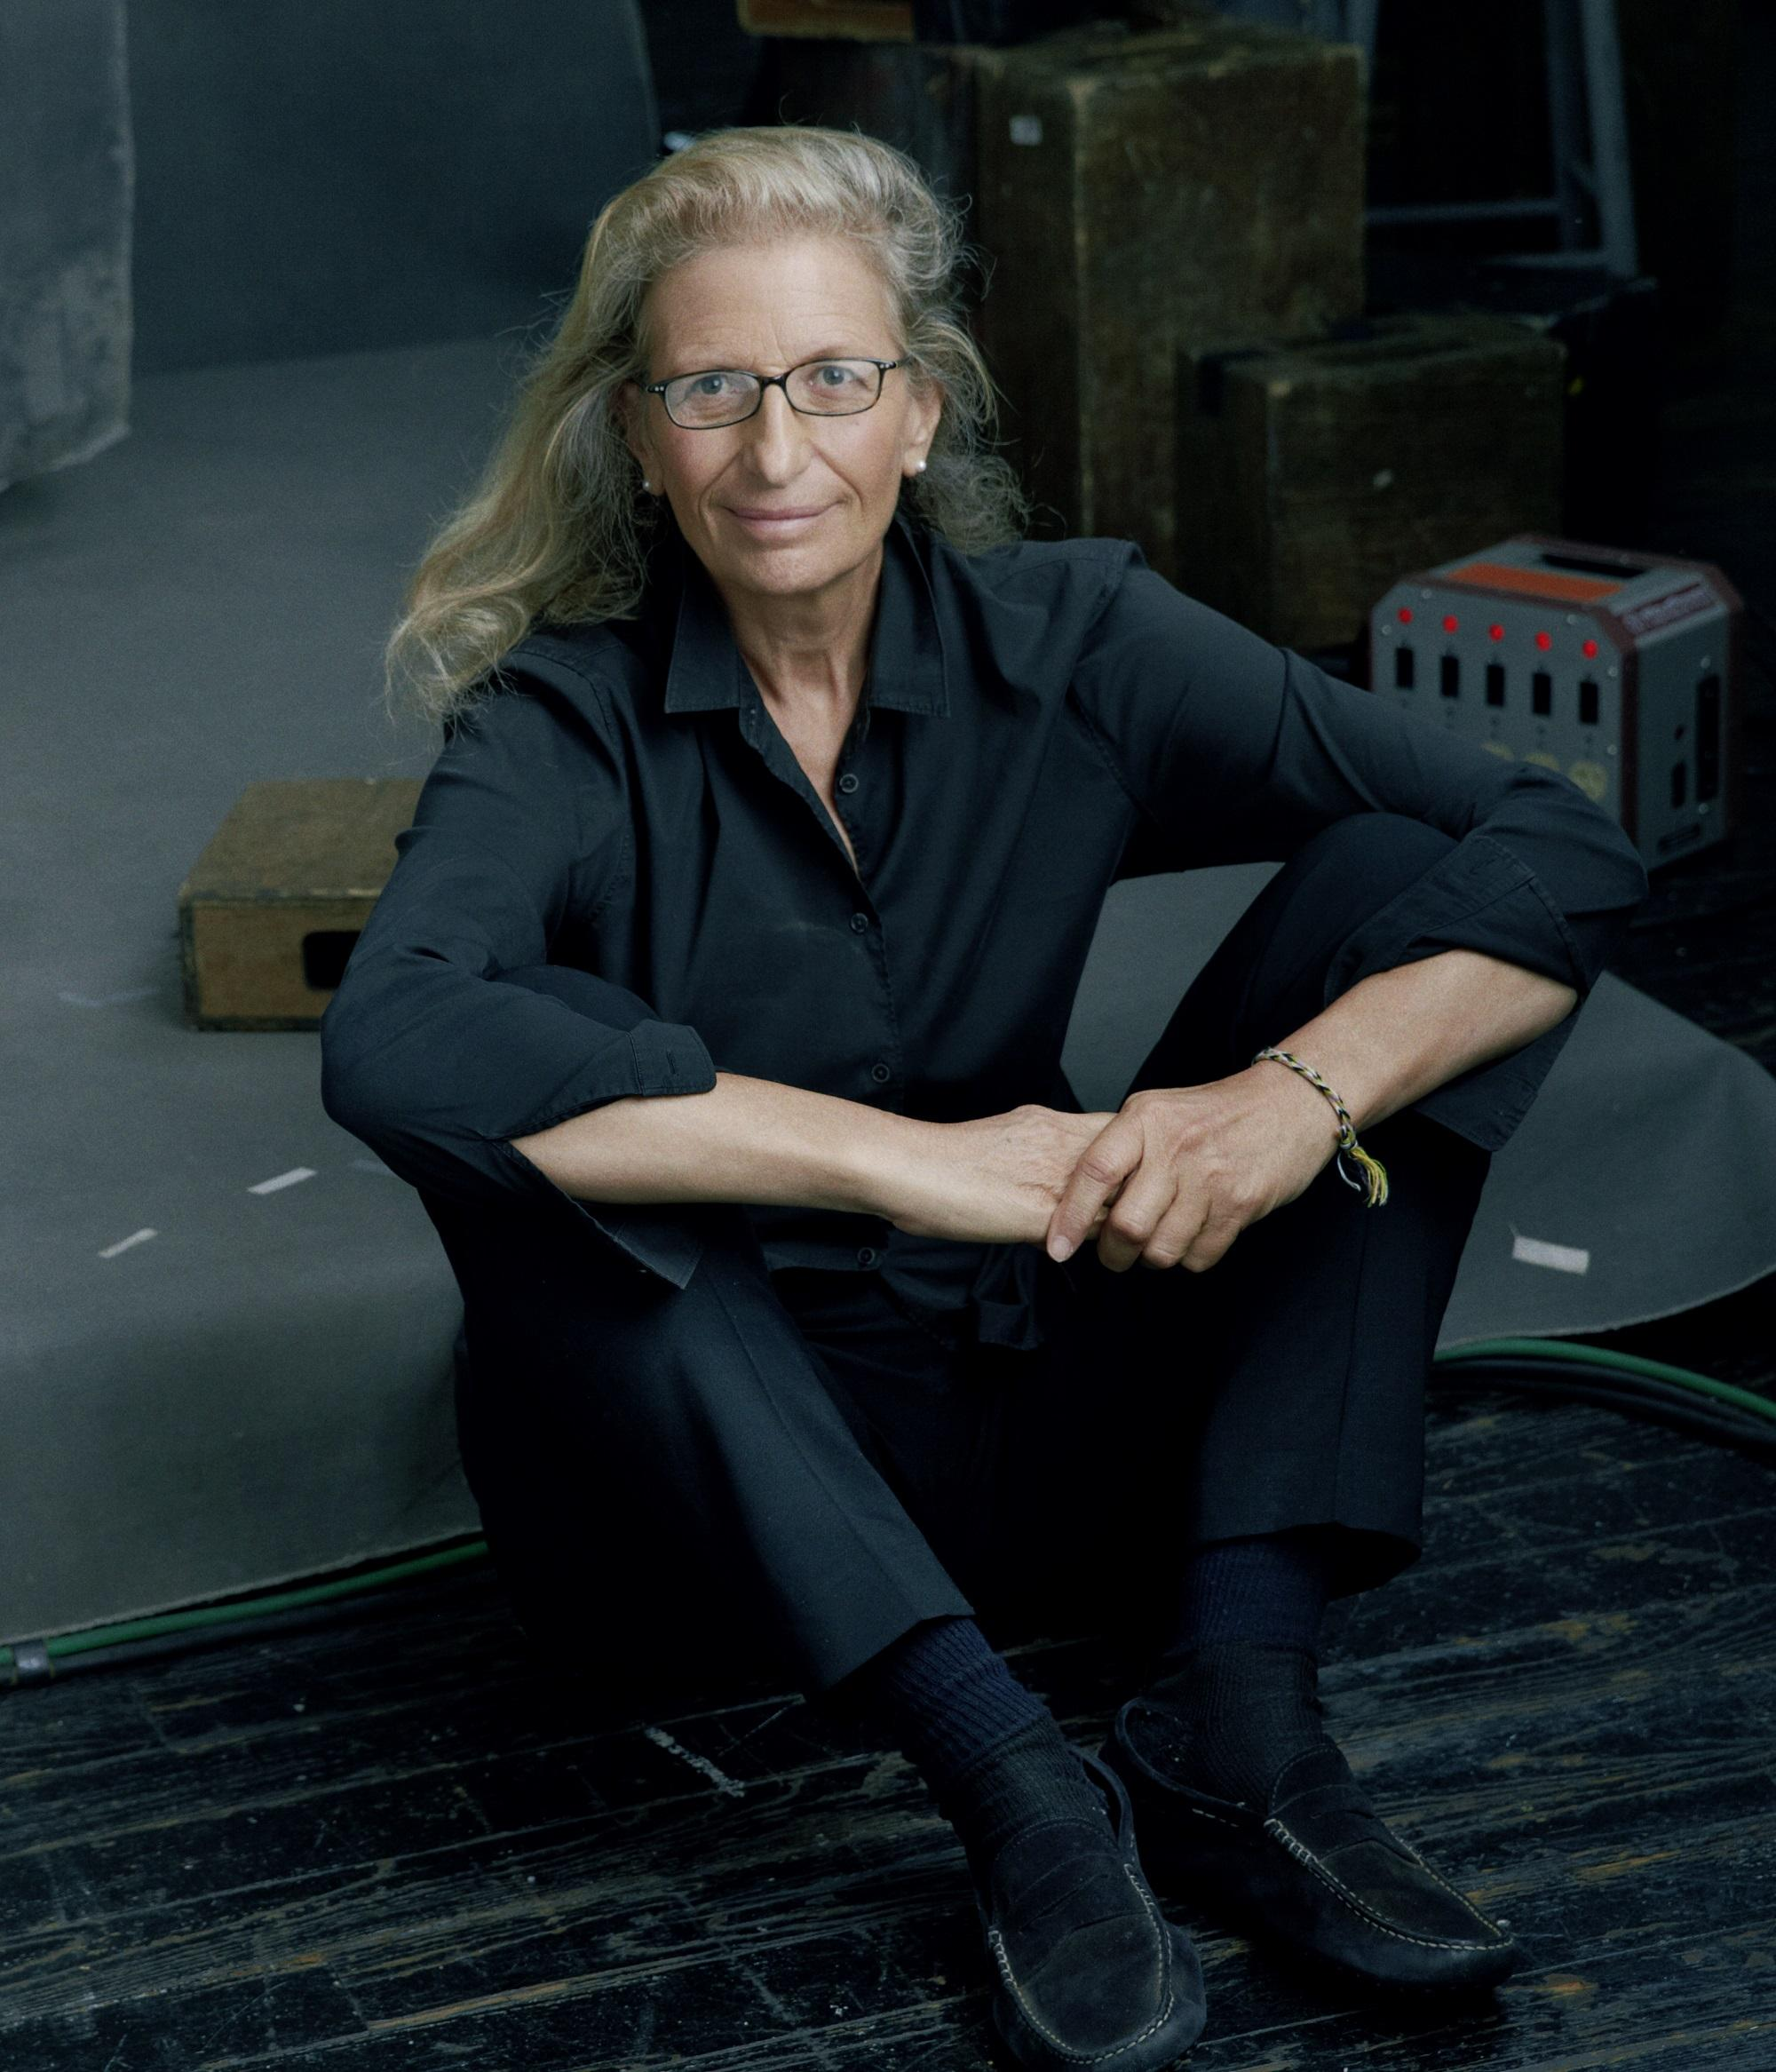 photographer annie leibovitz kalw. Black Bedroom Furniture Sets. Home Design Ideas